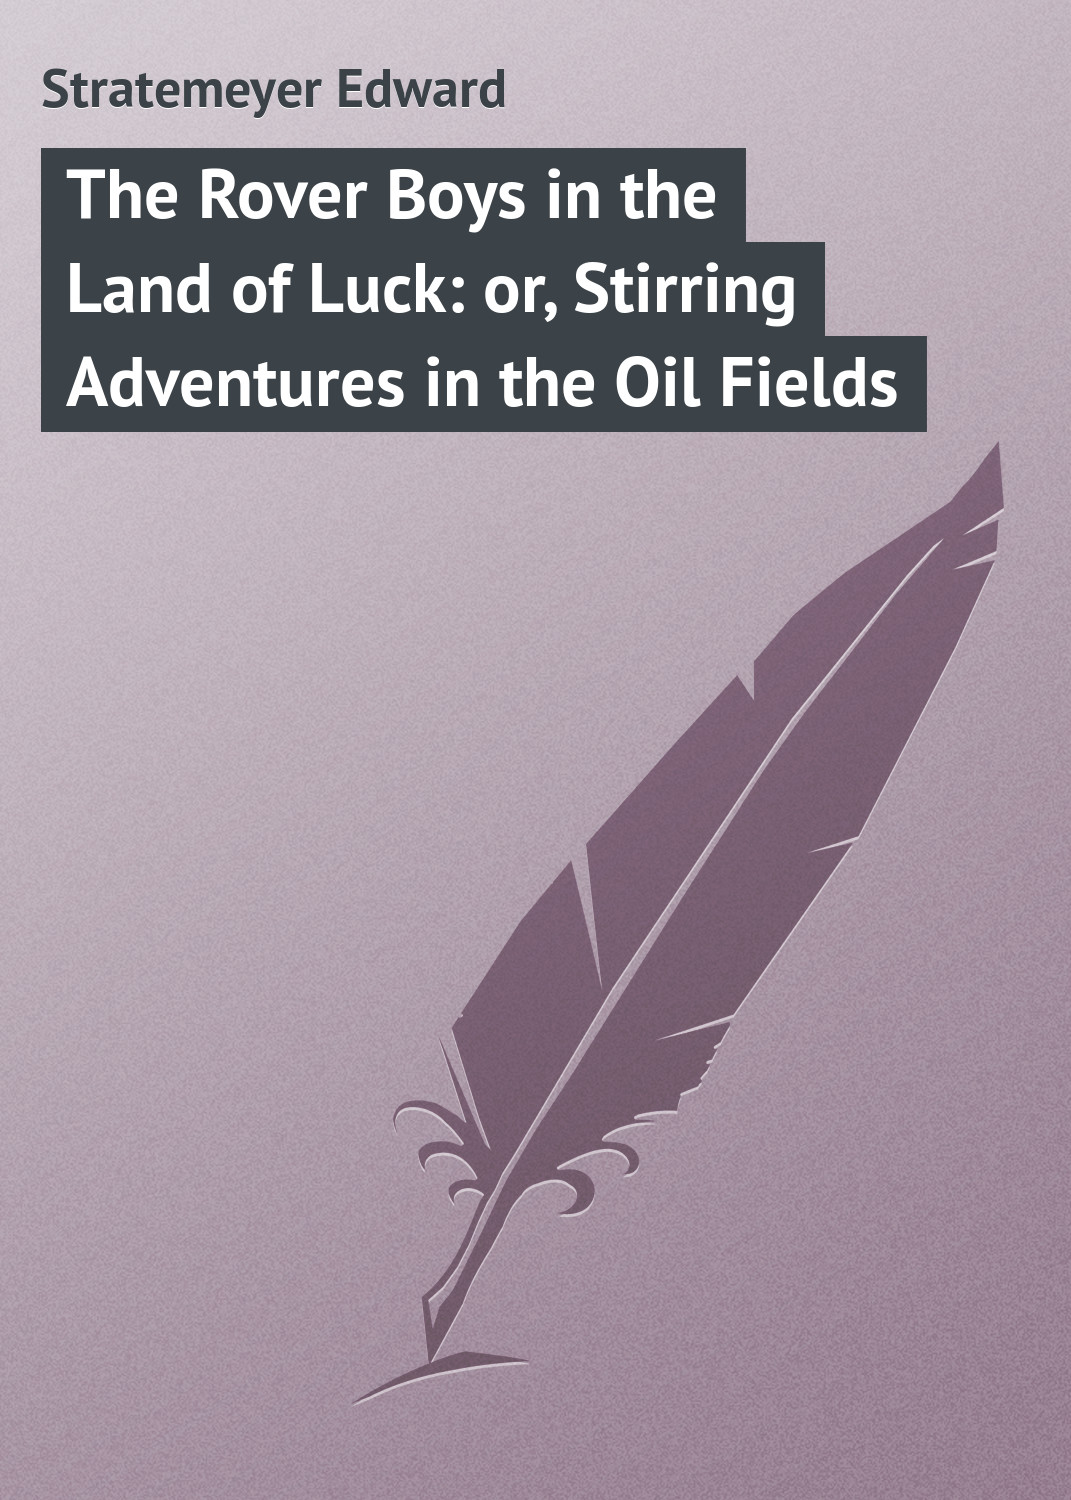 Stratemeyer Edward The Rover Boys in the Land of Luck: or, Stirring Adventures in the Oil Fields stratemeyer edward marching on niagara or the soldier boys of the old frontier